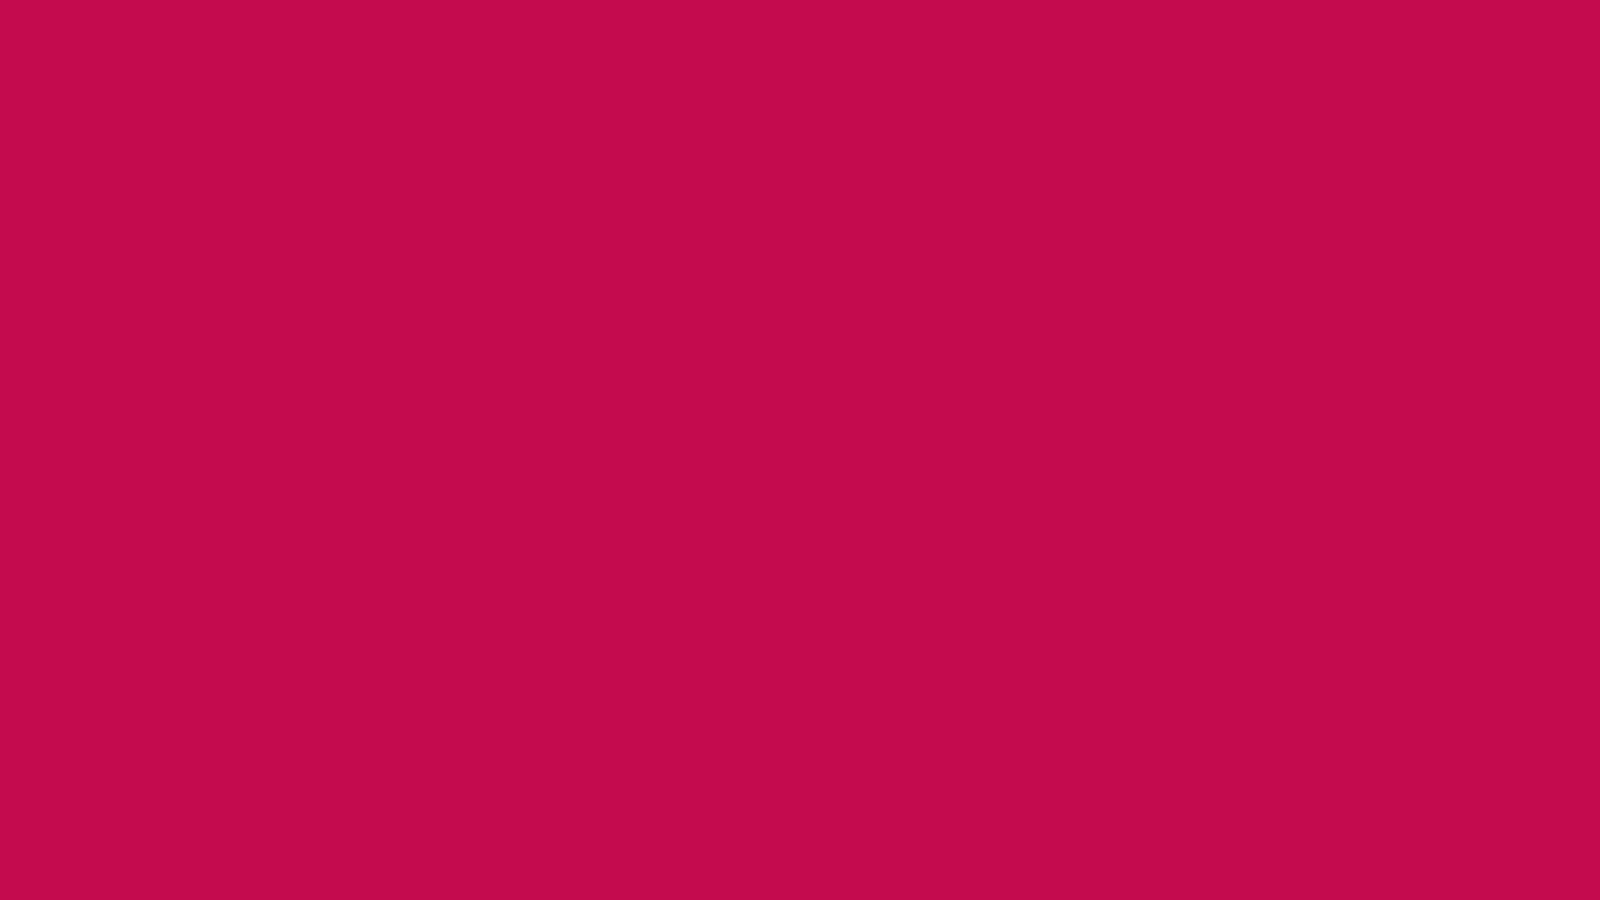 1600x900 Pictorial Carmine Solid Color Background